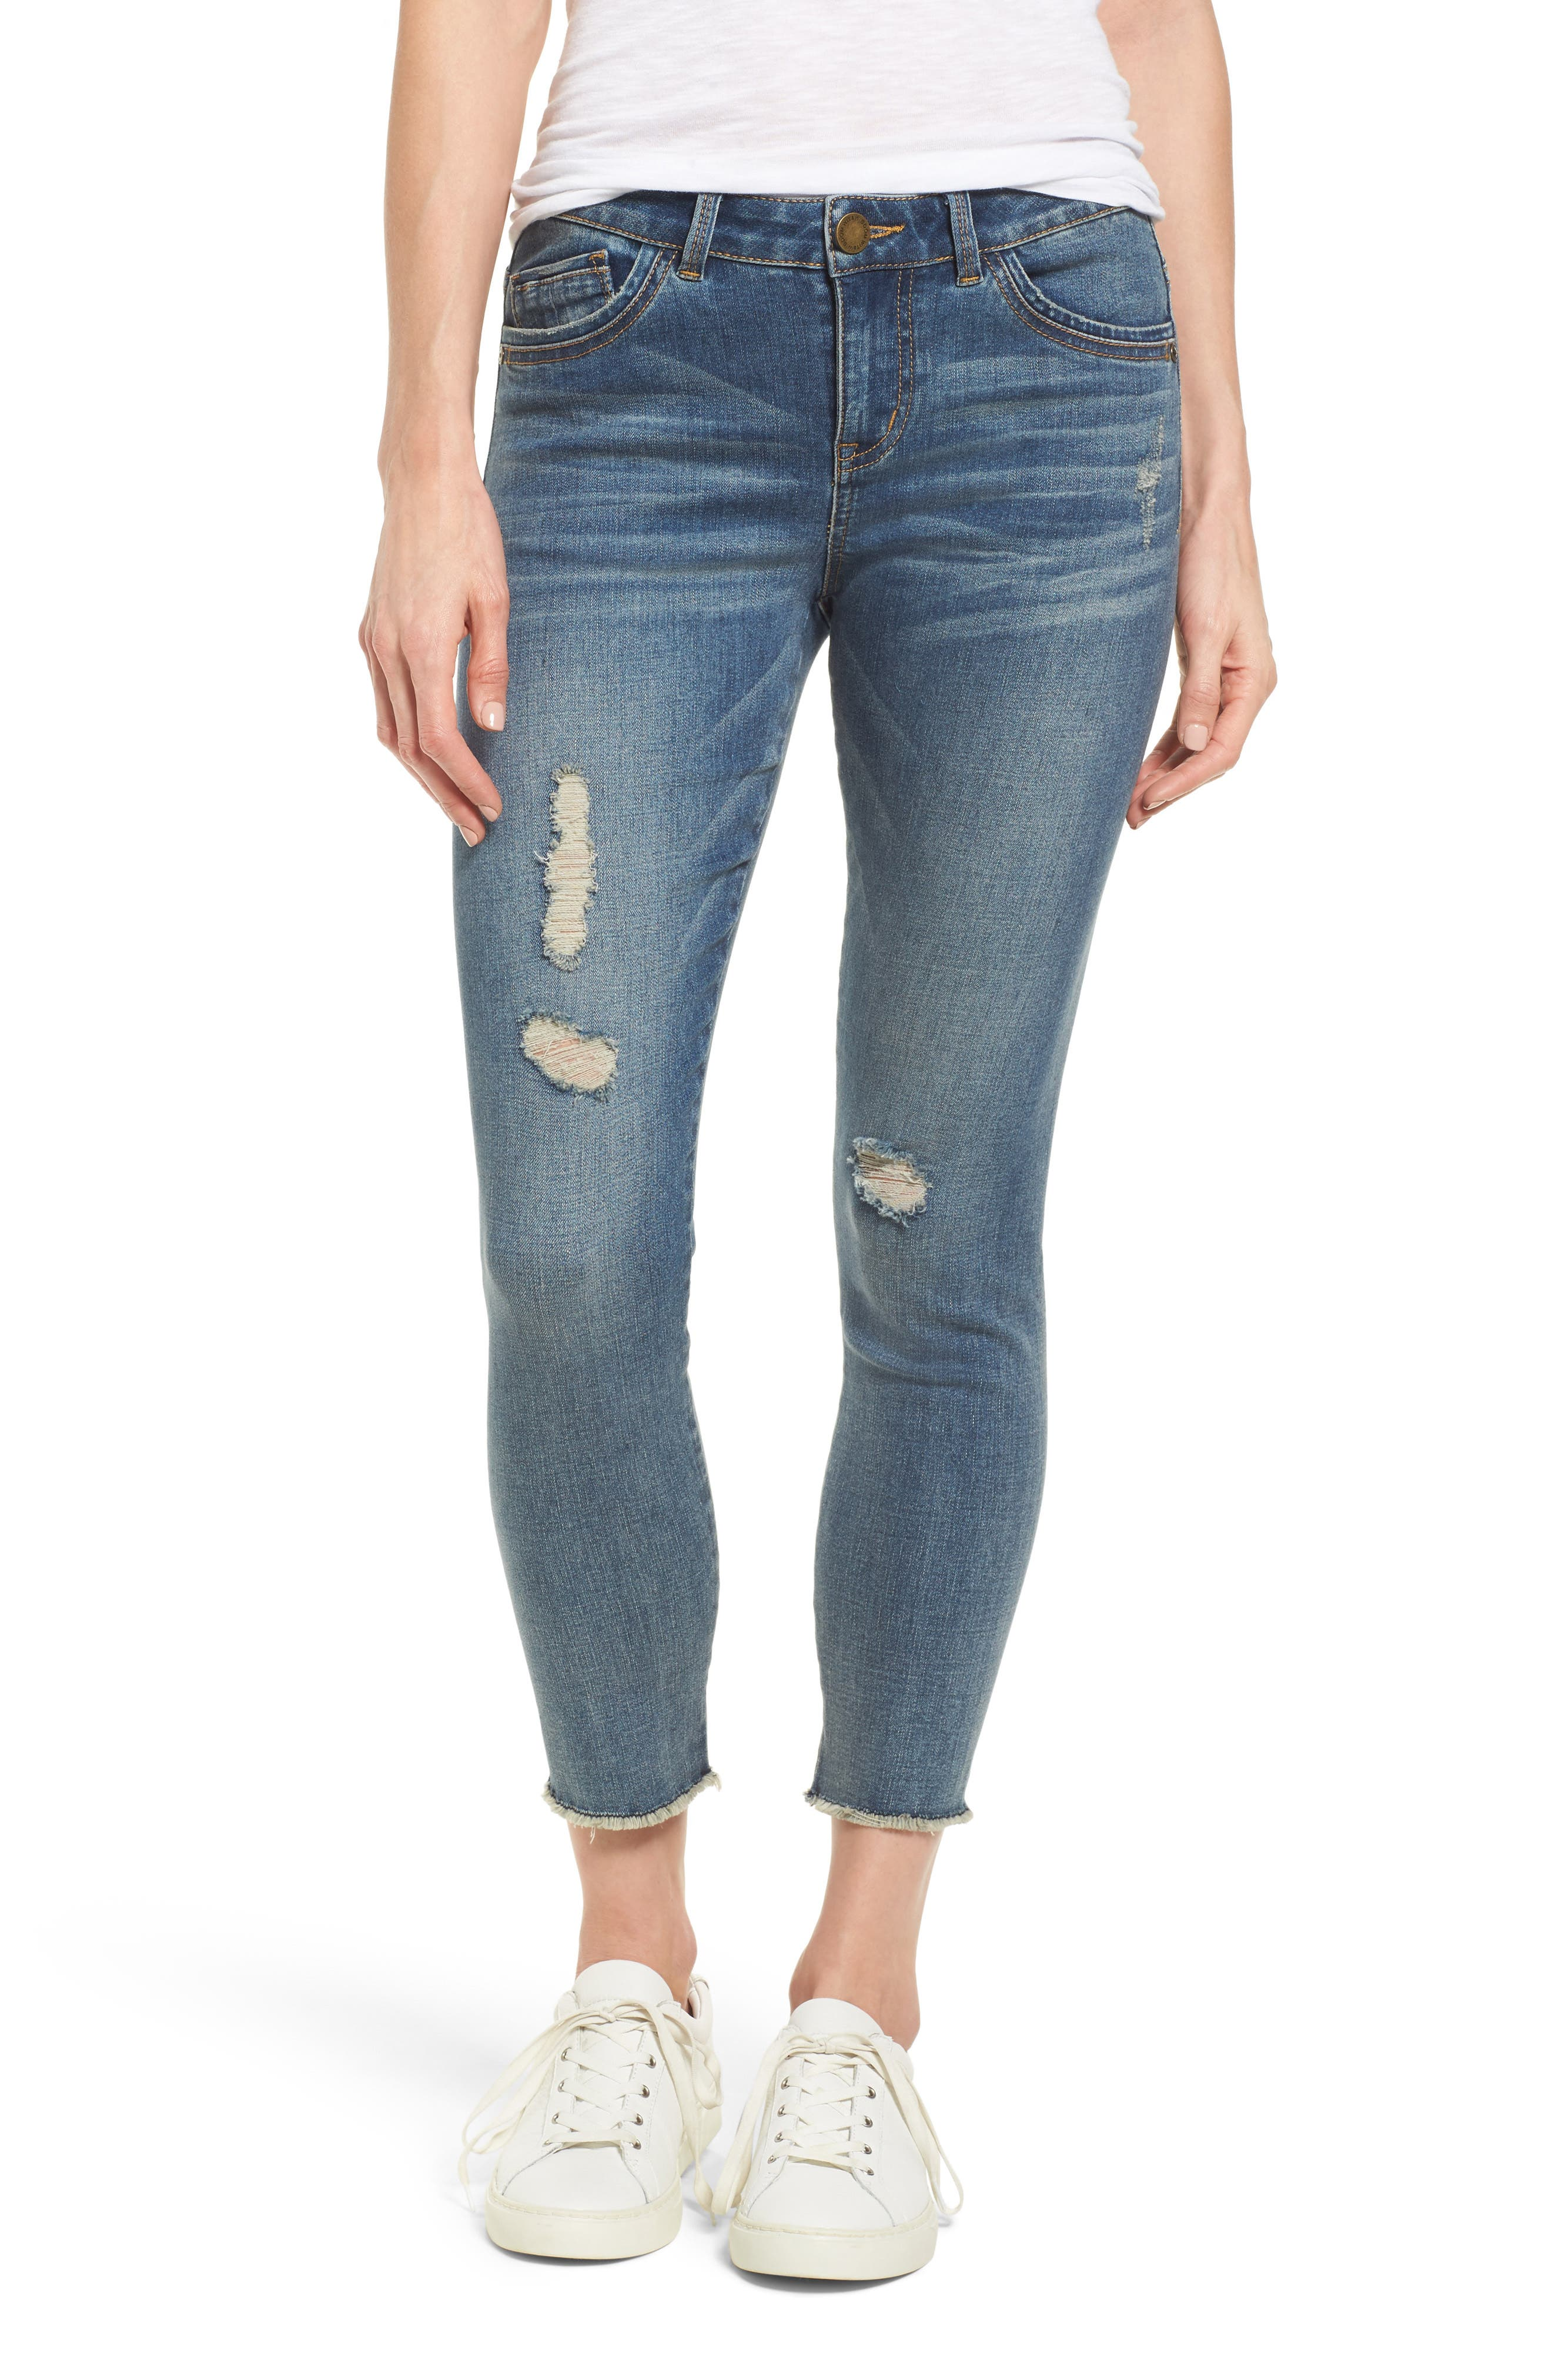 Main Image - Wit & Wisdom Ripped Seamless Ankle Jeans (Nordstrom Exclusive) (Regular & Petite)